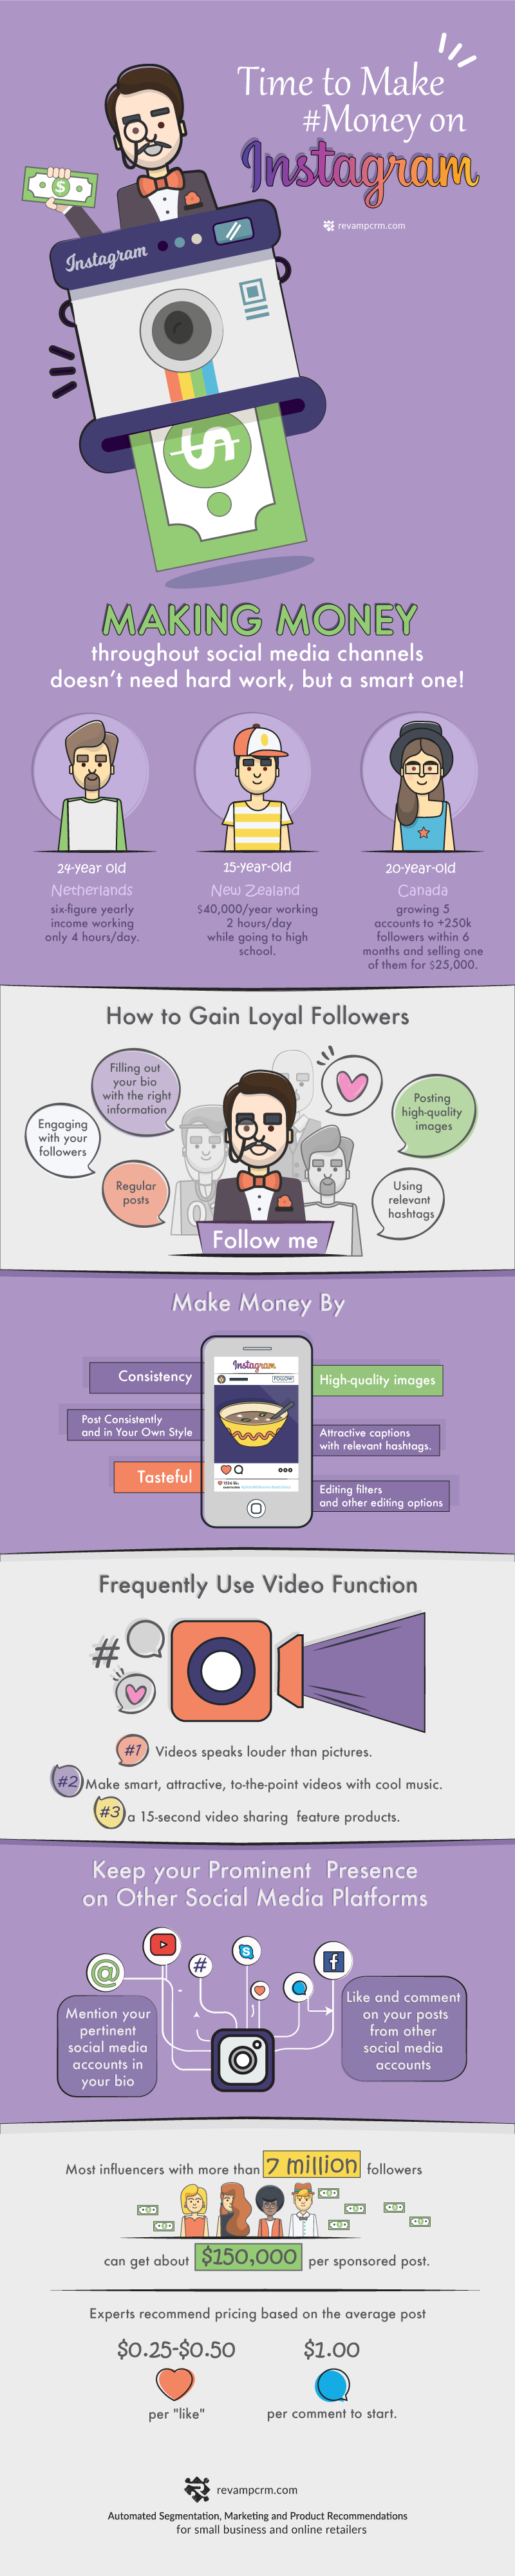 How to Make Money on Instagram - #infographic